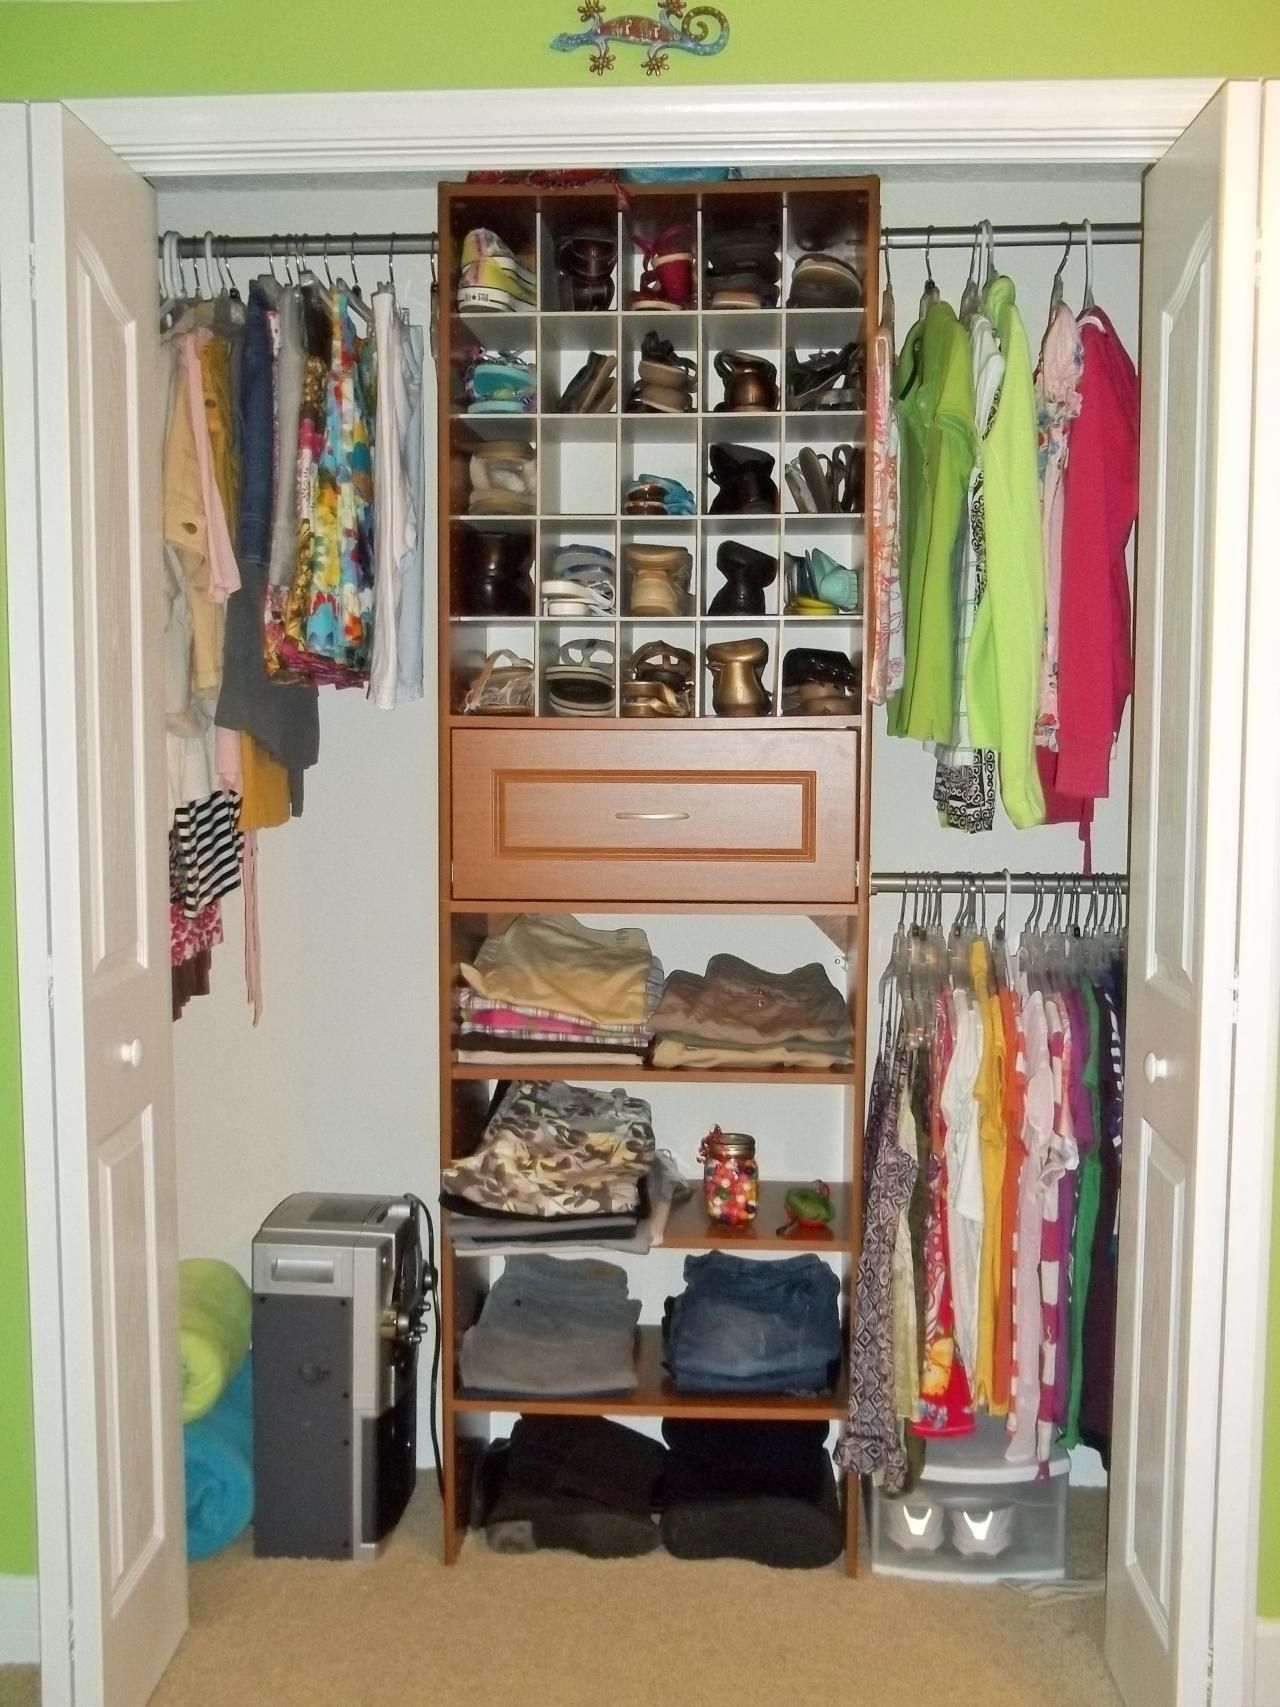 Sketch of small bedroom closet organization ideas for How to organize your small bedroom closet